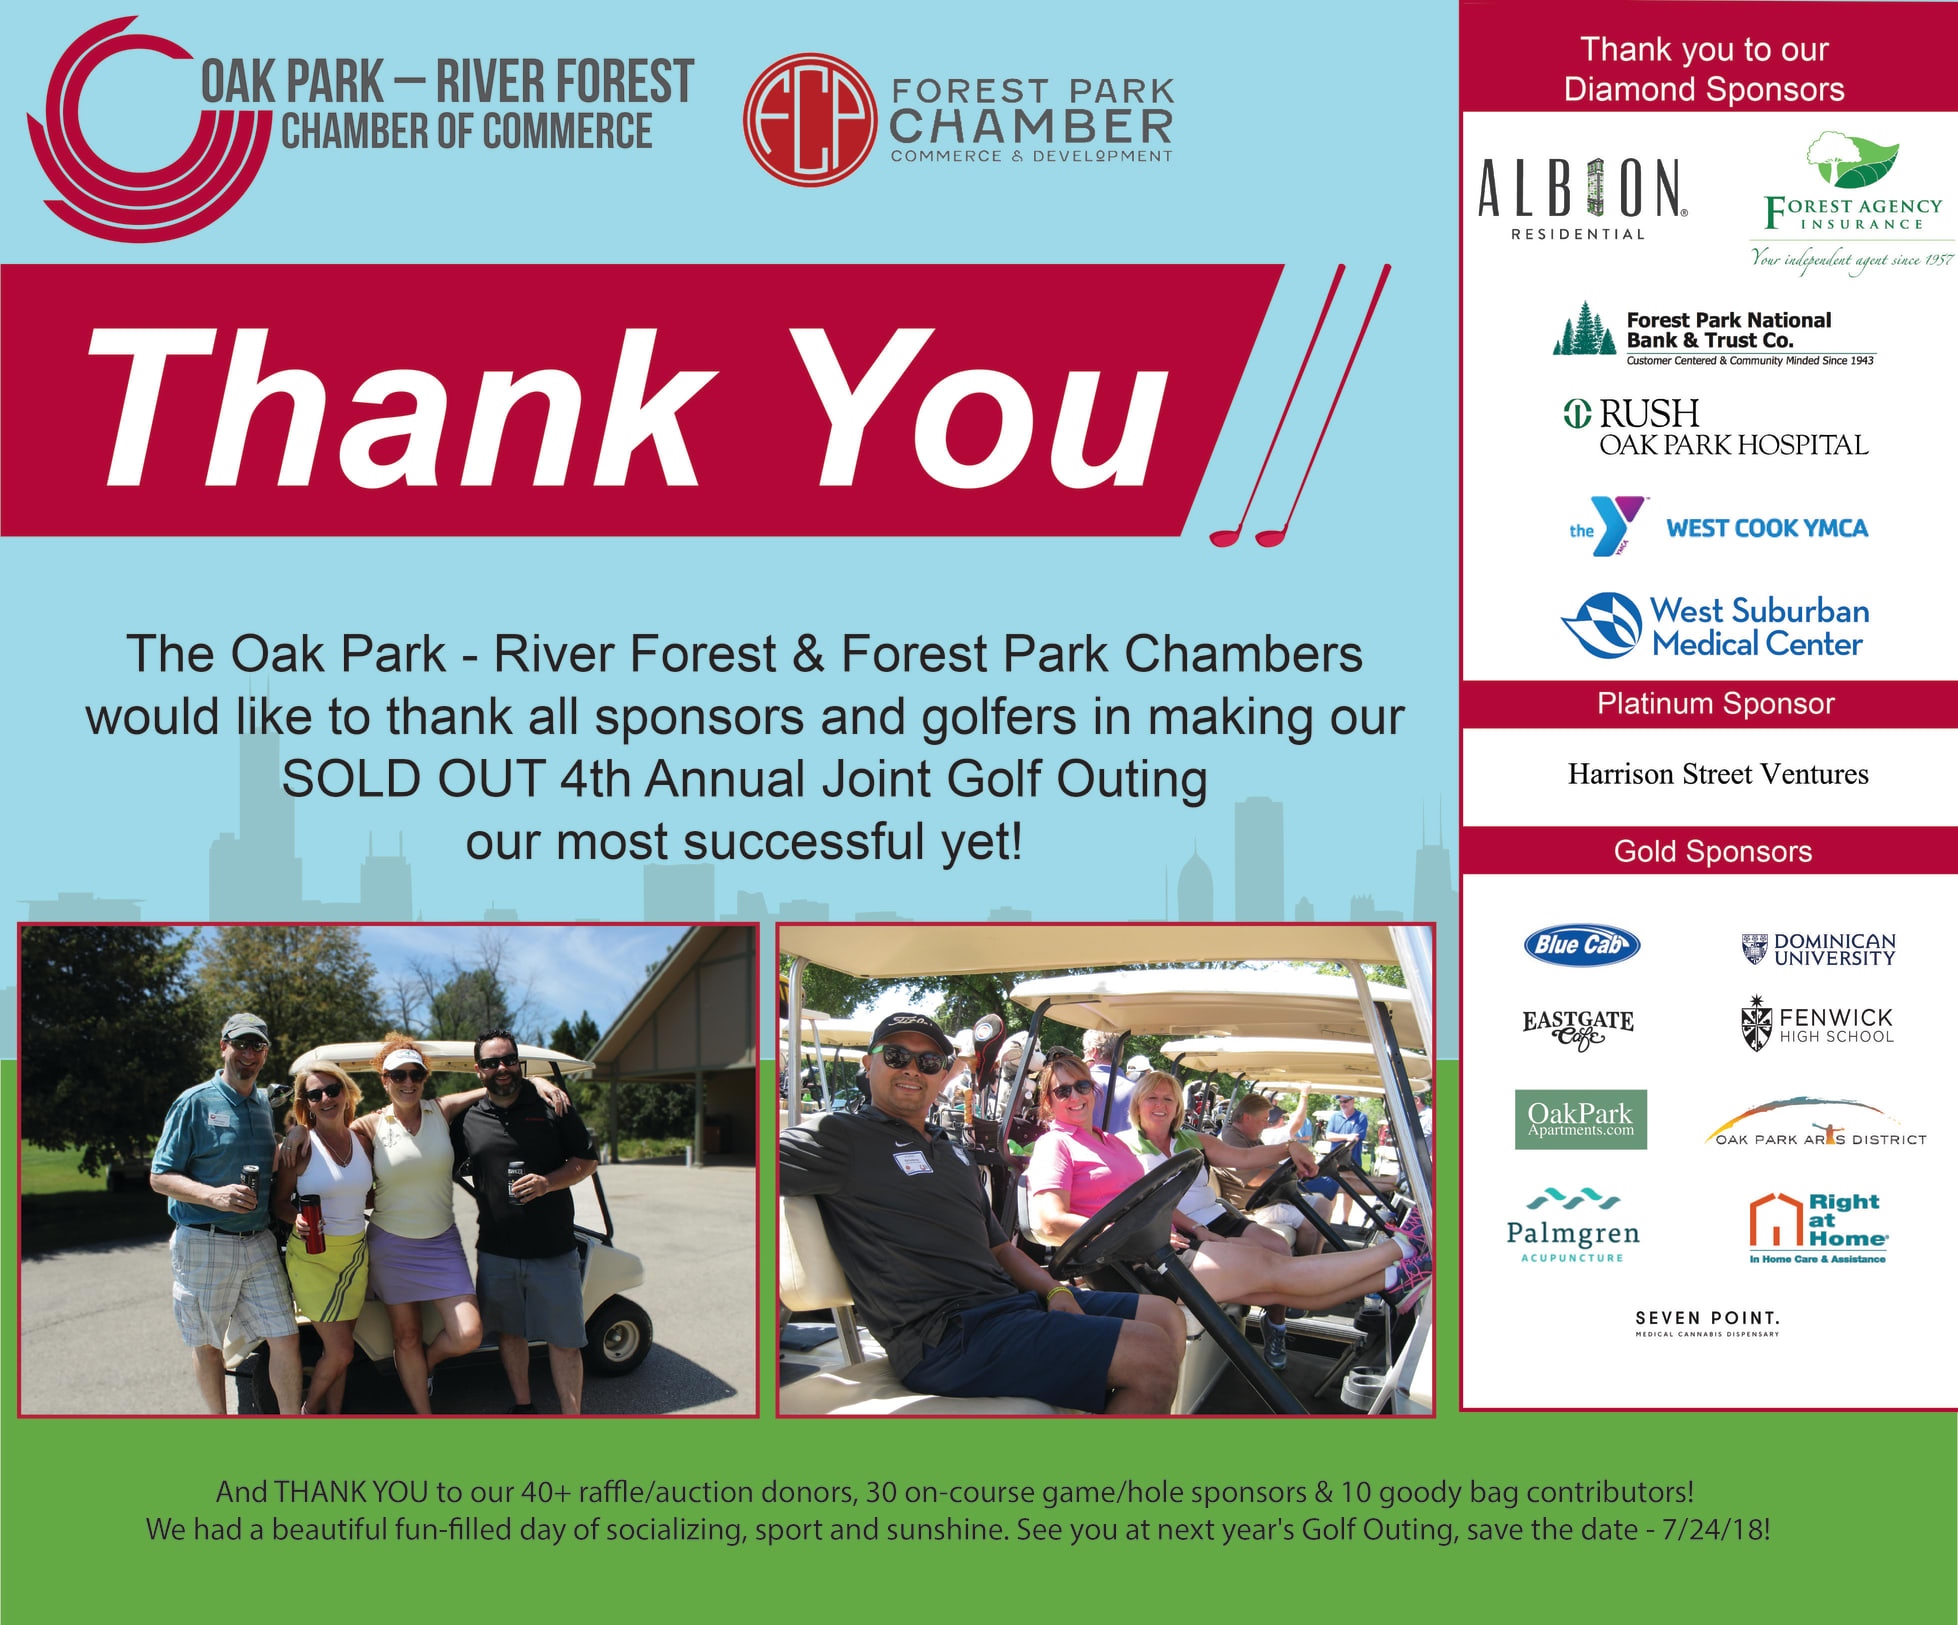 Thank you for a terrific 2017 Golf Outing!